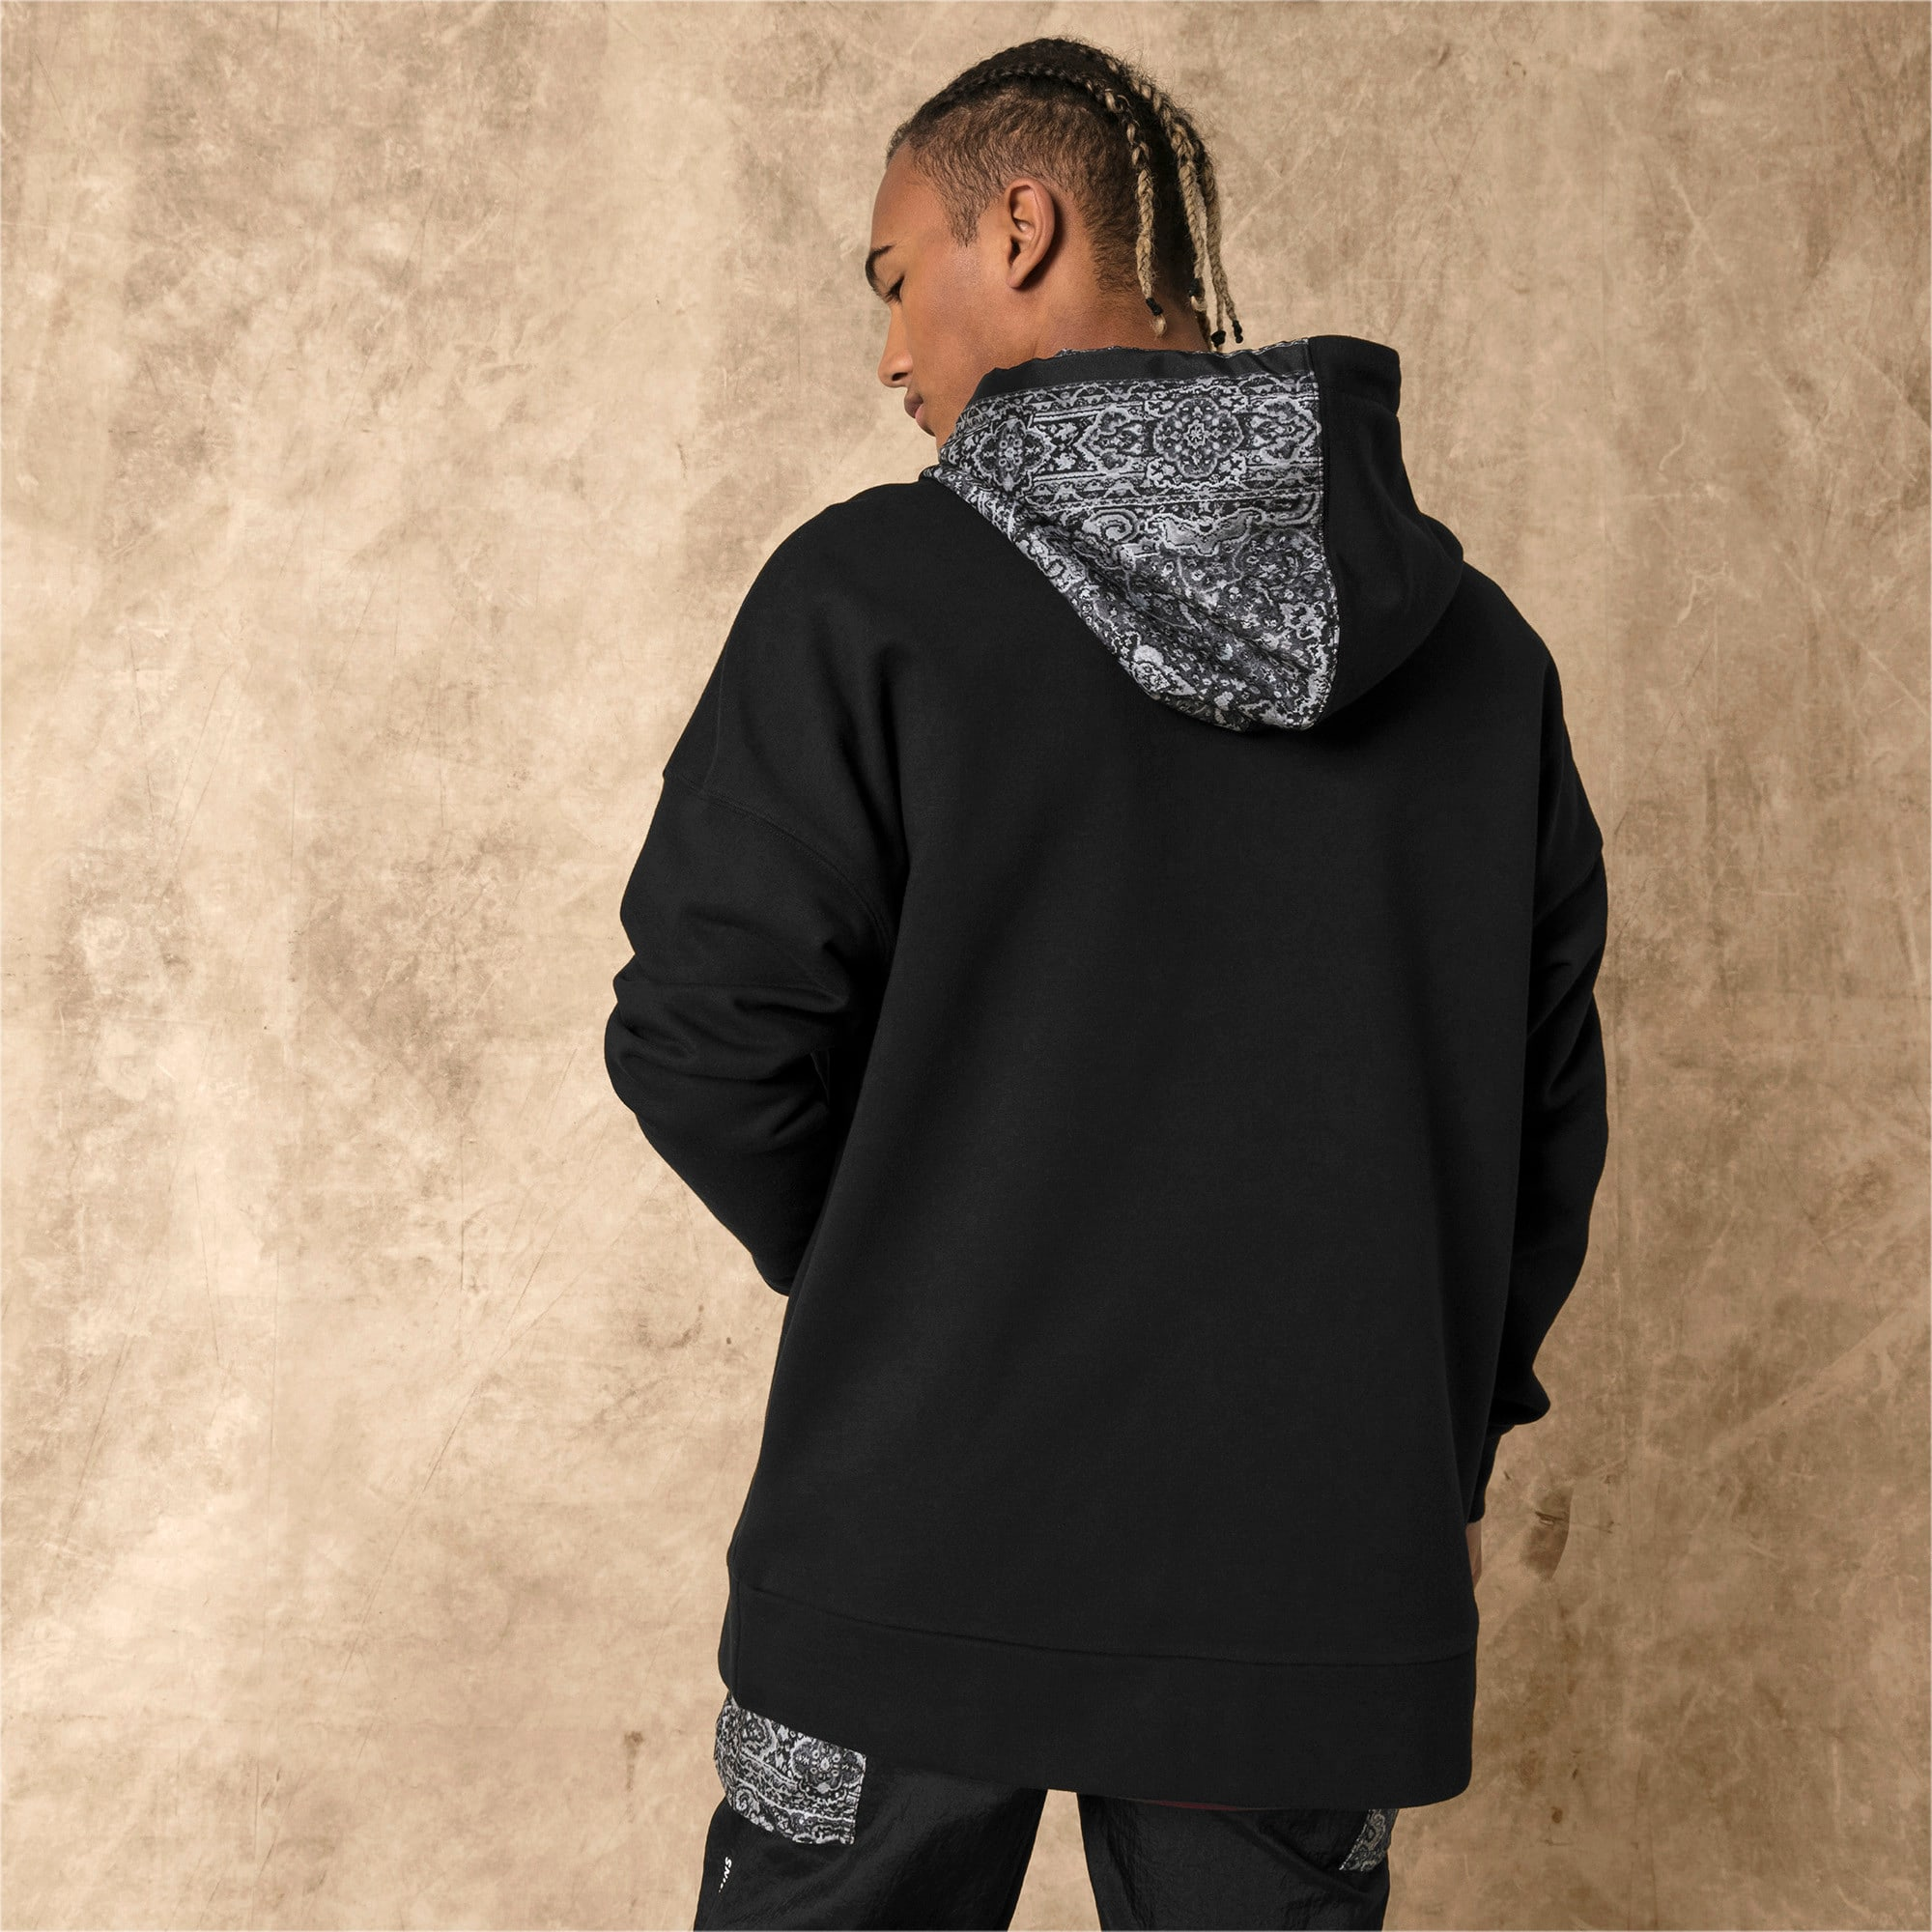 Thumbnail 3 of PUMA x LES BENJAMINS Men's Hoodie, Puma Black, medium